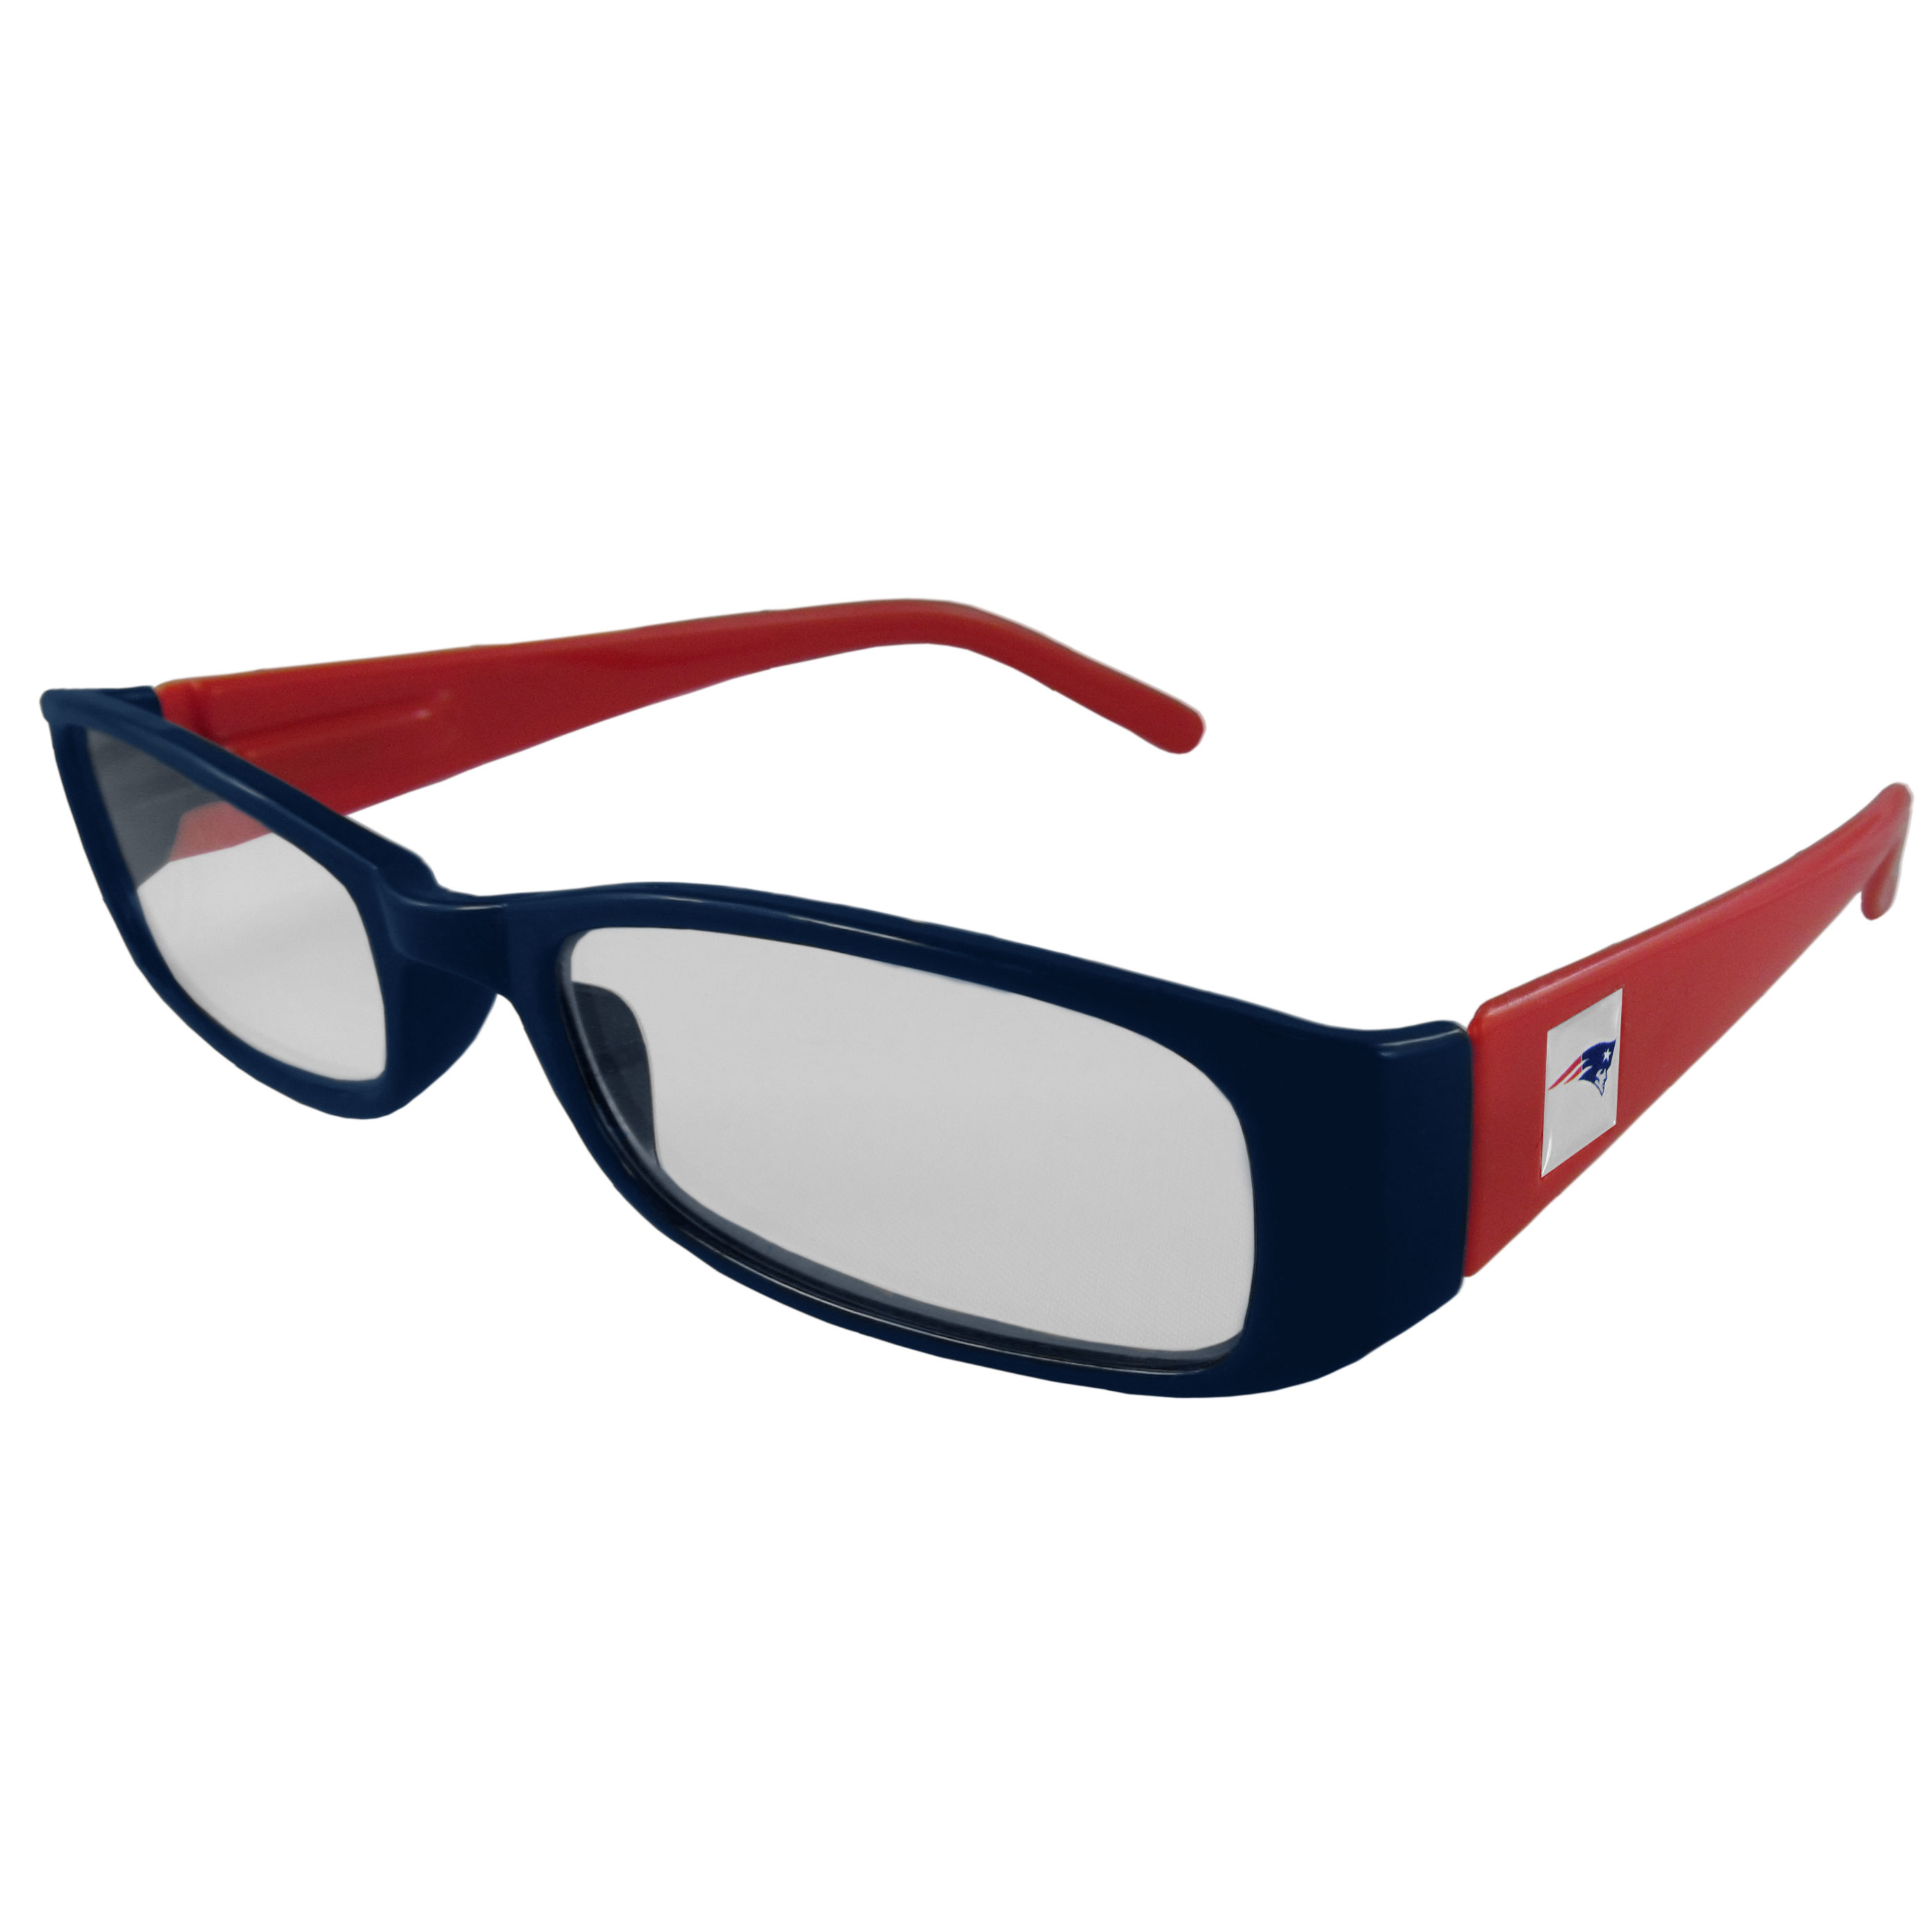 New England Patriots Reading Glasses +1.25 - Our New England Patriots reading glasses are 5.25 inches wide and feature the team logo on each arm. Magnification Power 1.25